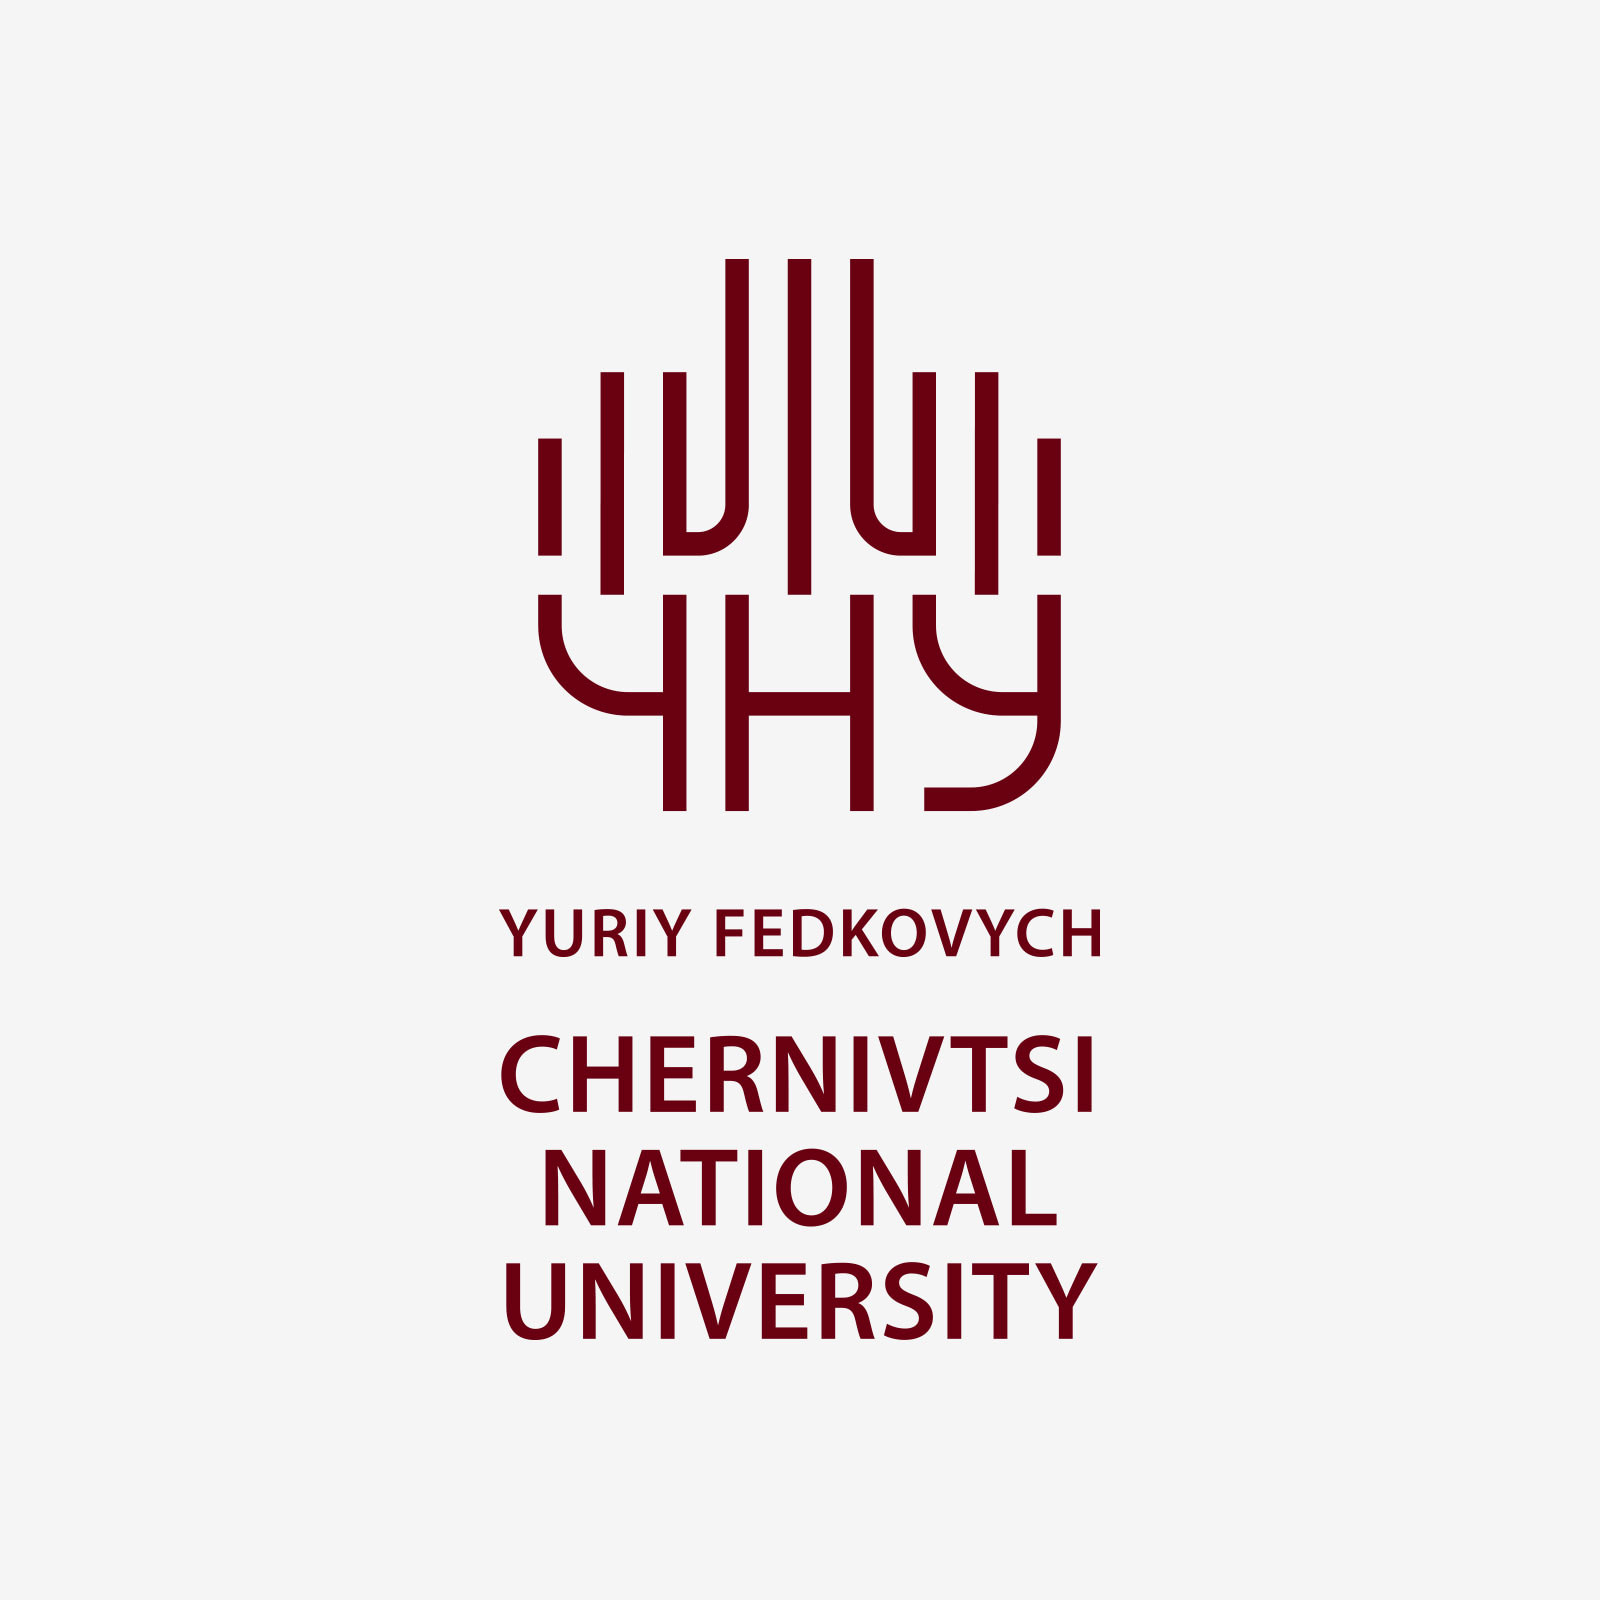 Yuriy Fedkovych Chernivtsi National University Logo